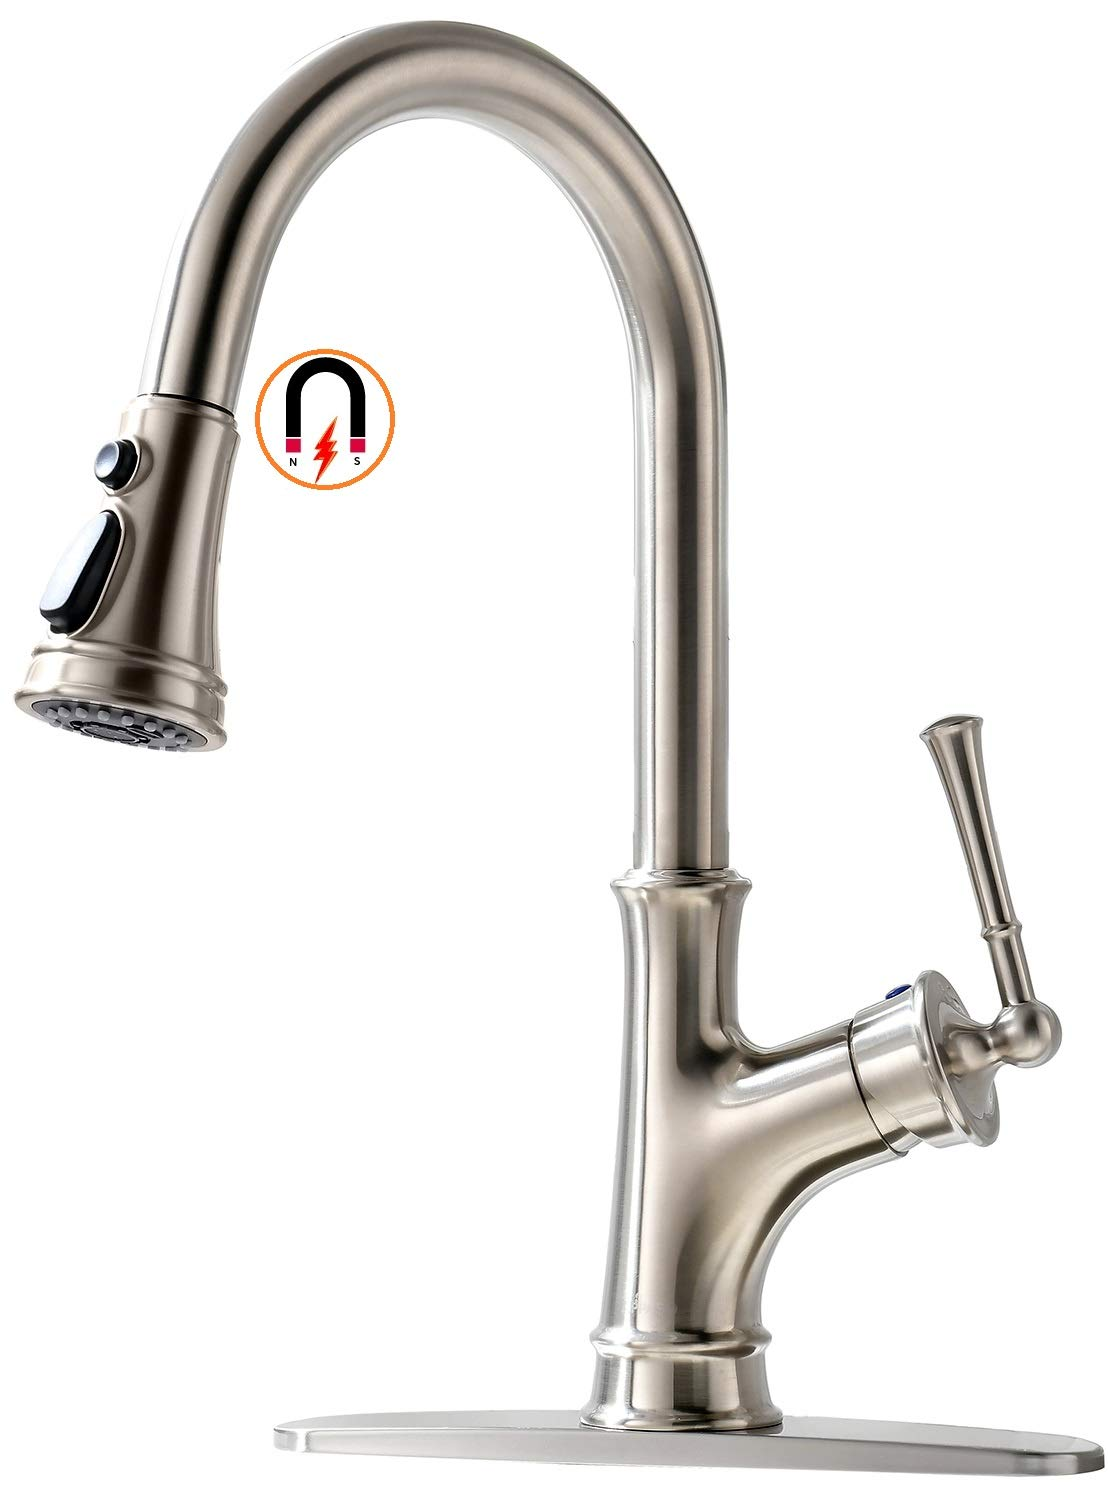 APPASO Pull Down Kitchen Faucet with Magnetic Docking Sprayer, Stainless Steel Brushed Nickel Single Handle Commercial High Arc Single Hole Pull Out Kitchen Sink Faucets with Deck Plate by APPASO